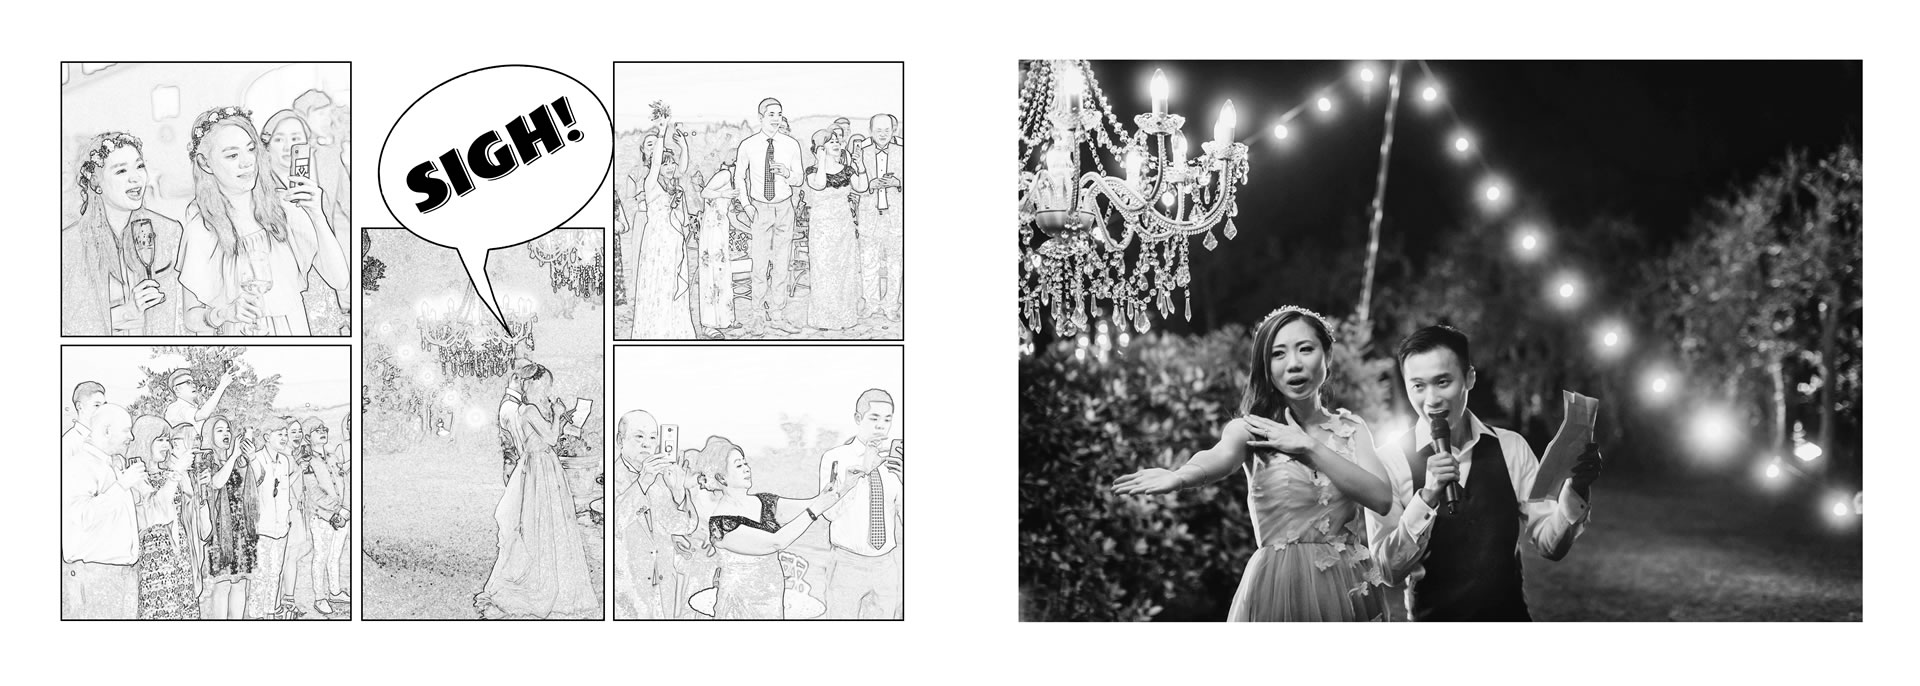 Third place in the  :: He loves picture, she loves manga: we love Las Vegas and WPPI! :: Luxury wedding photography - 36 :: Third place in the